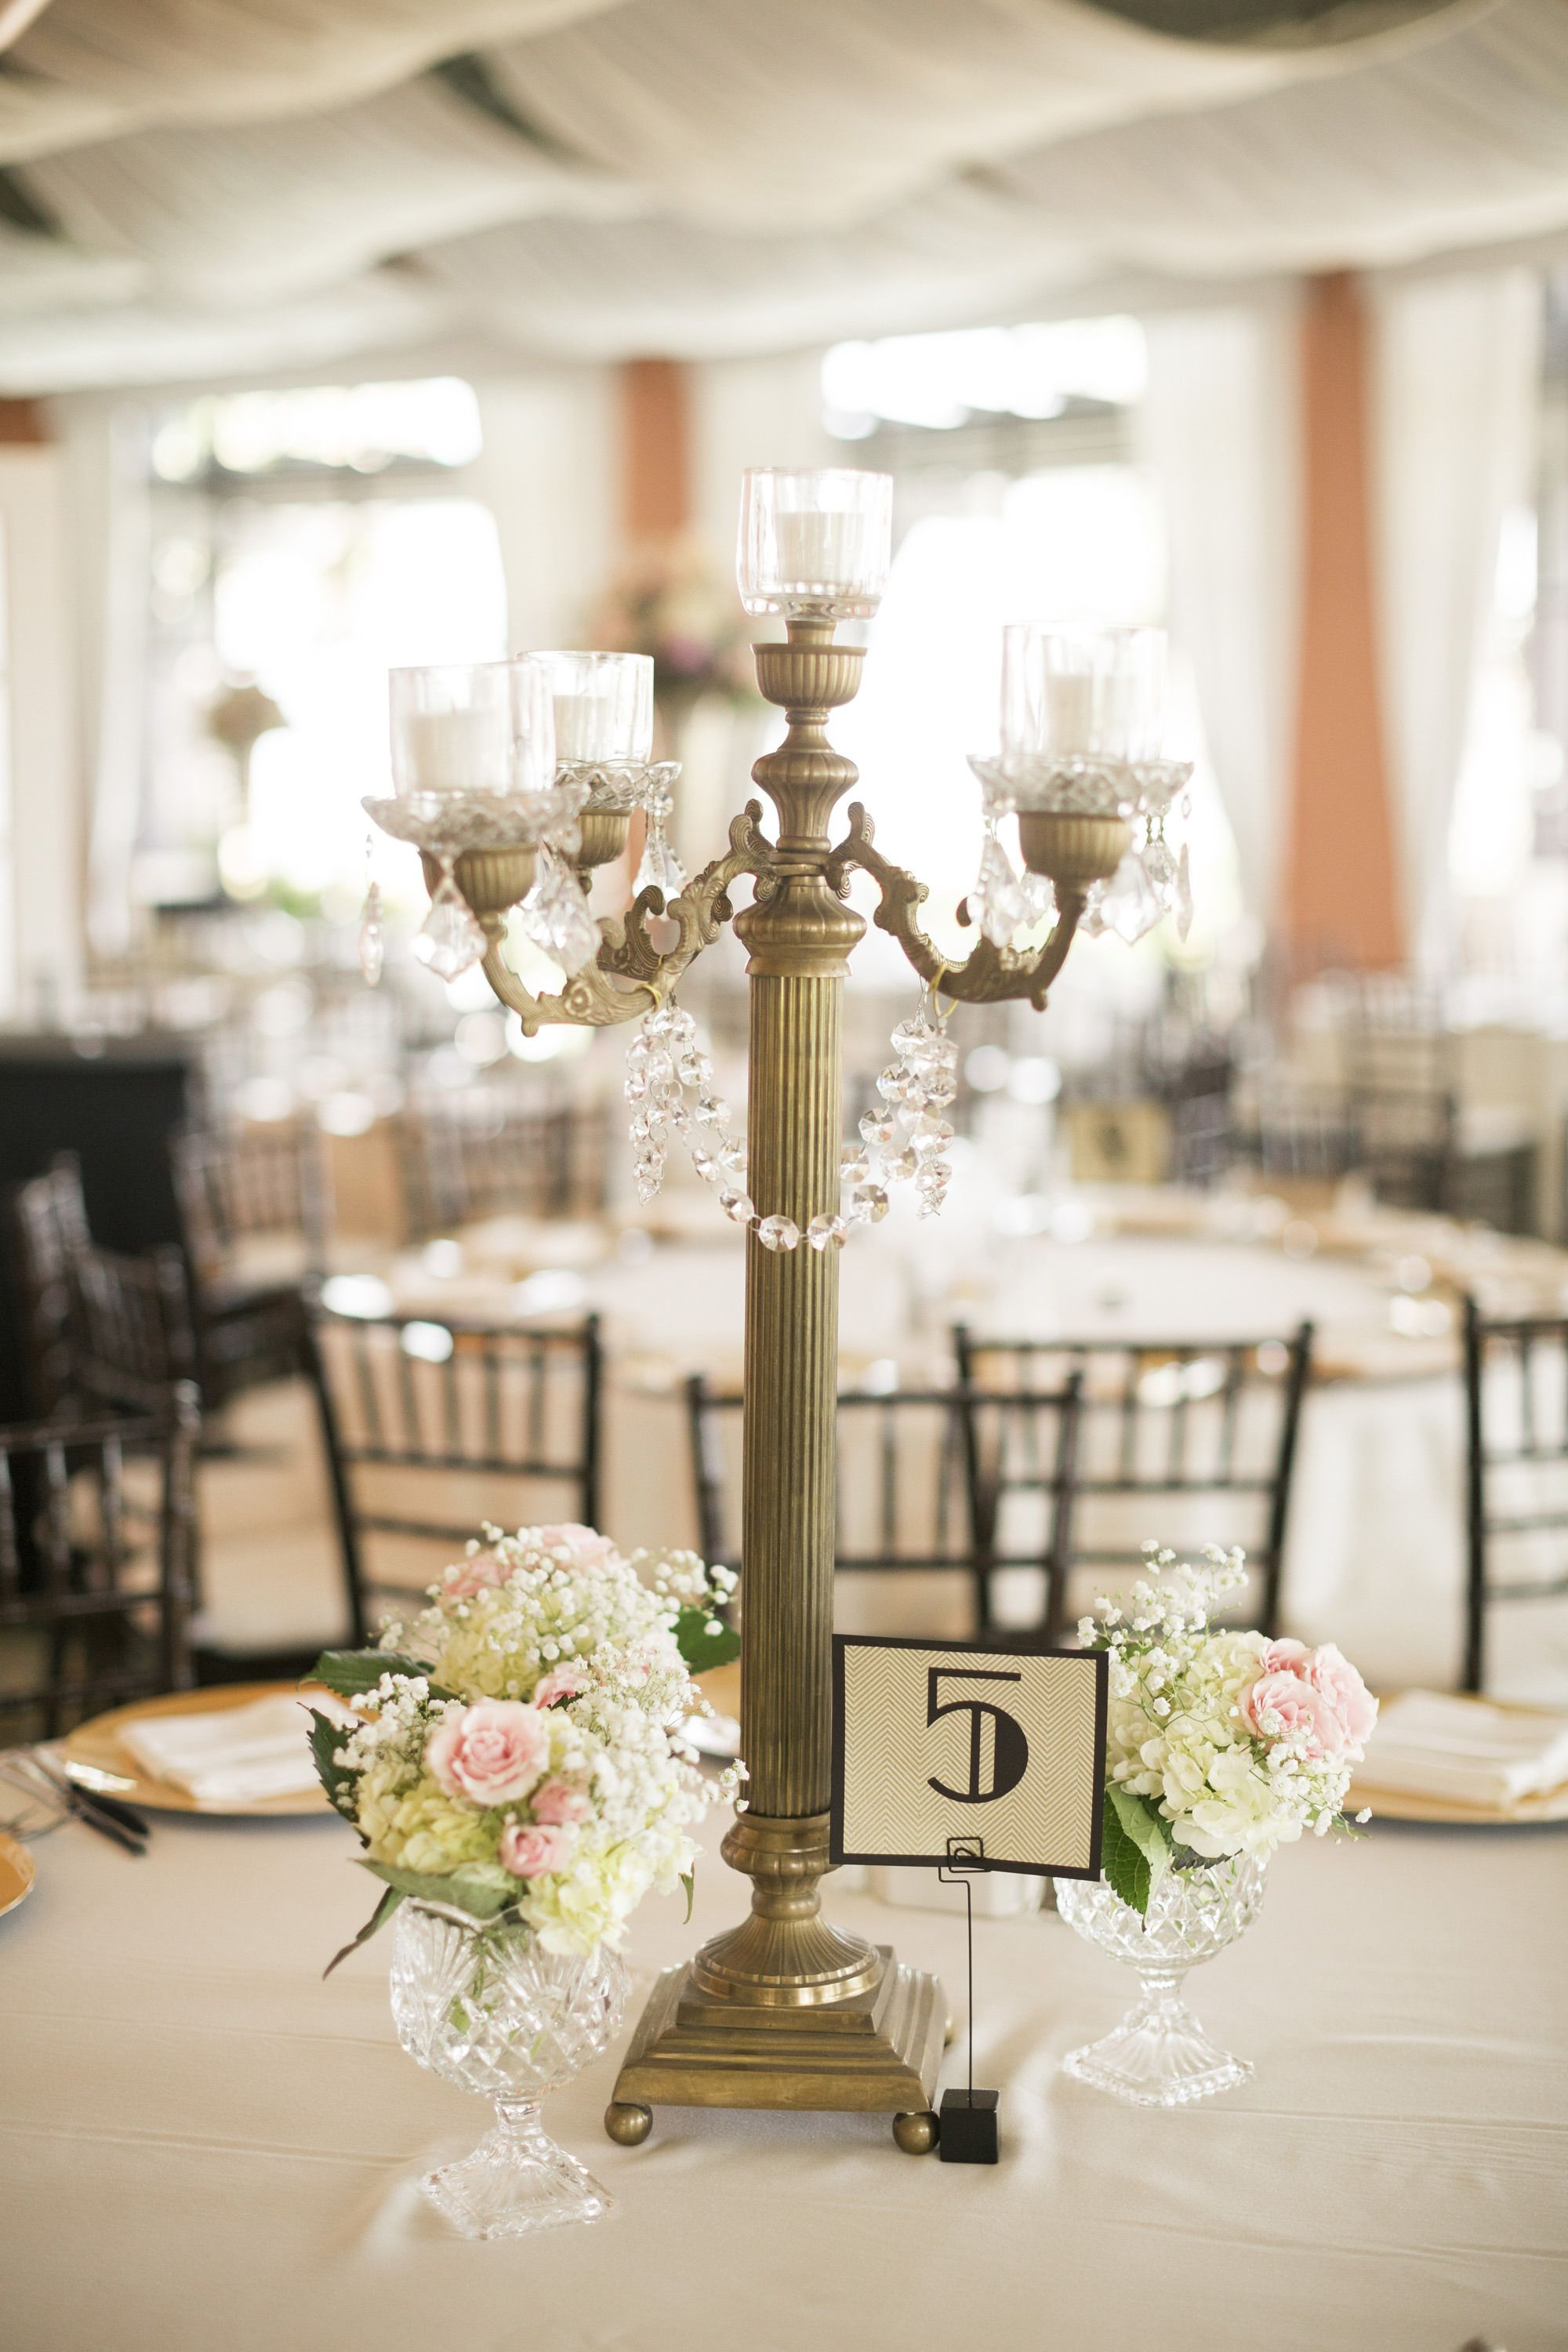 Great gatsby inspired galveston wedding from mustard seed